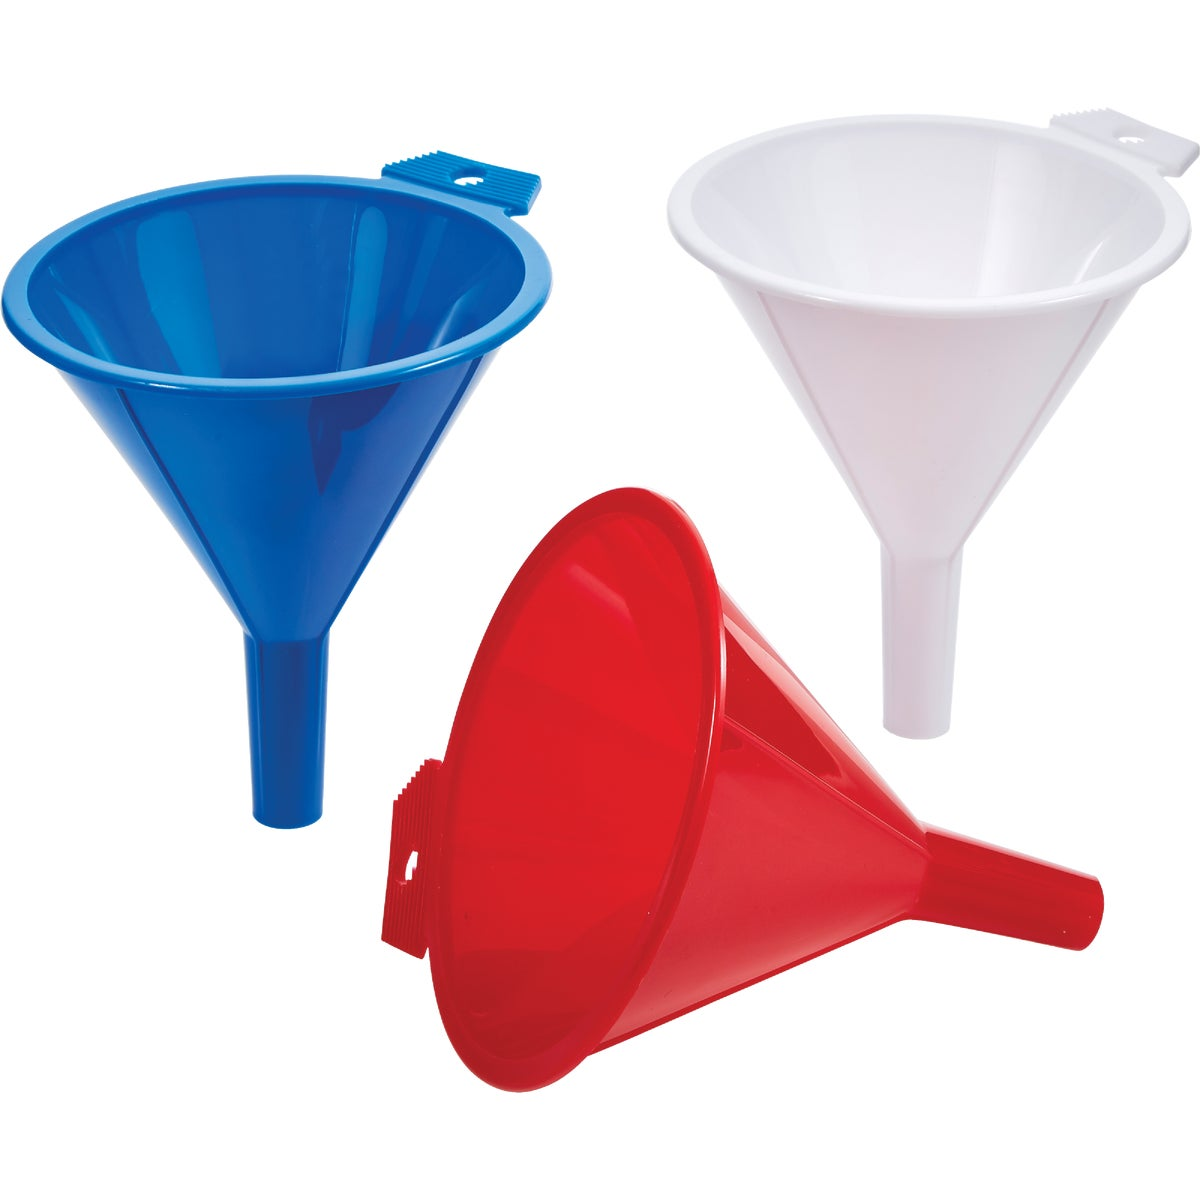 8OZ FUNNEL - 00122 by Arrow Plastic Mfg Co